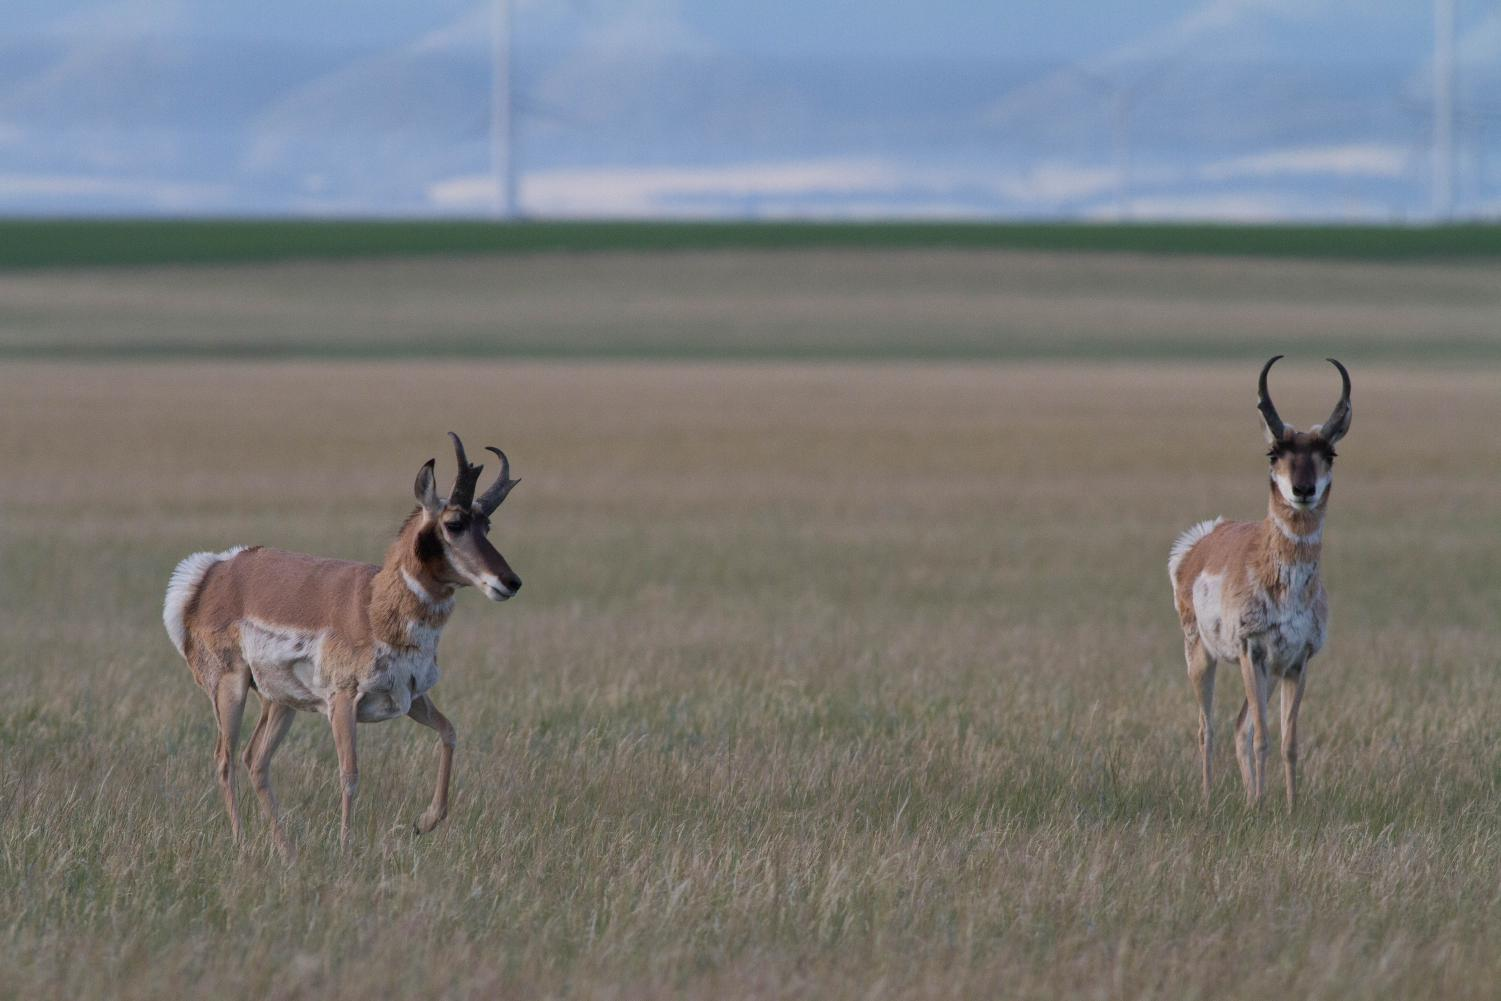 Pronghorn are very common throughout the prairie, but are threatened by the rise of barbed wire fences on ranches.  Pronghorn evolved alongside the now-extinct North American Cheetah, and evolved to run extremely fast rather than jump very high.  These two males were foraging in the prairies in Wheatland co., MT on 23 June 2017.